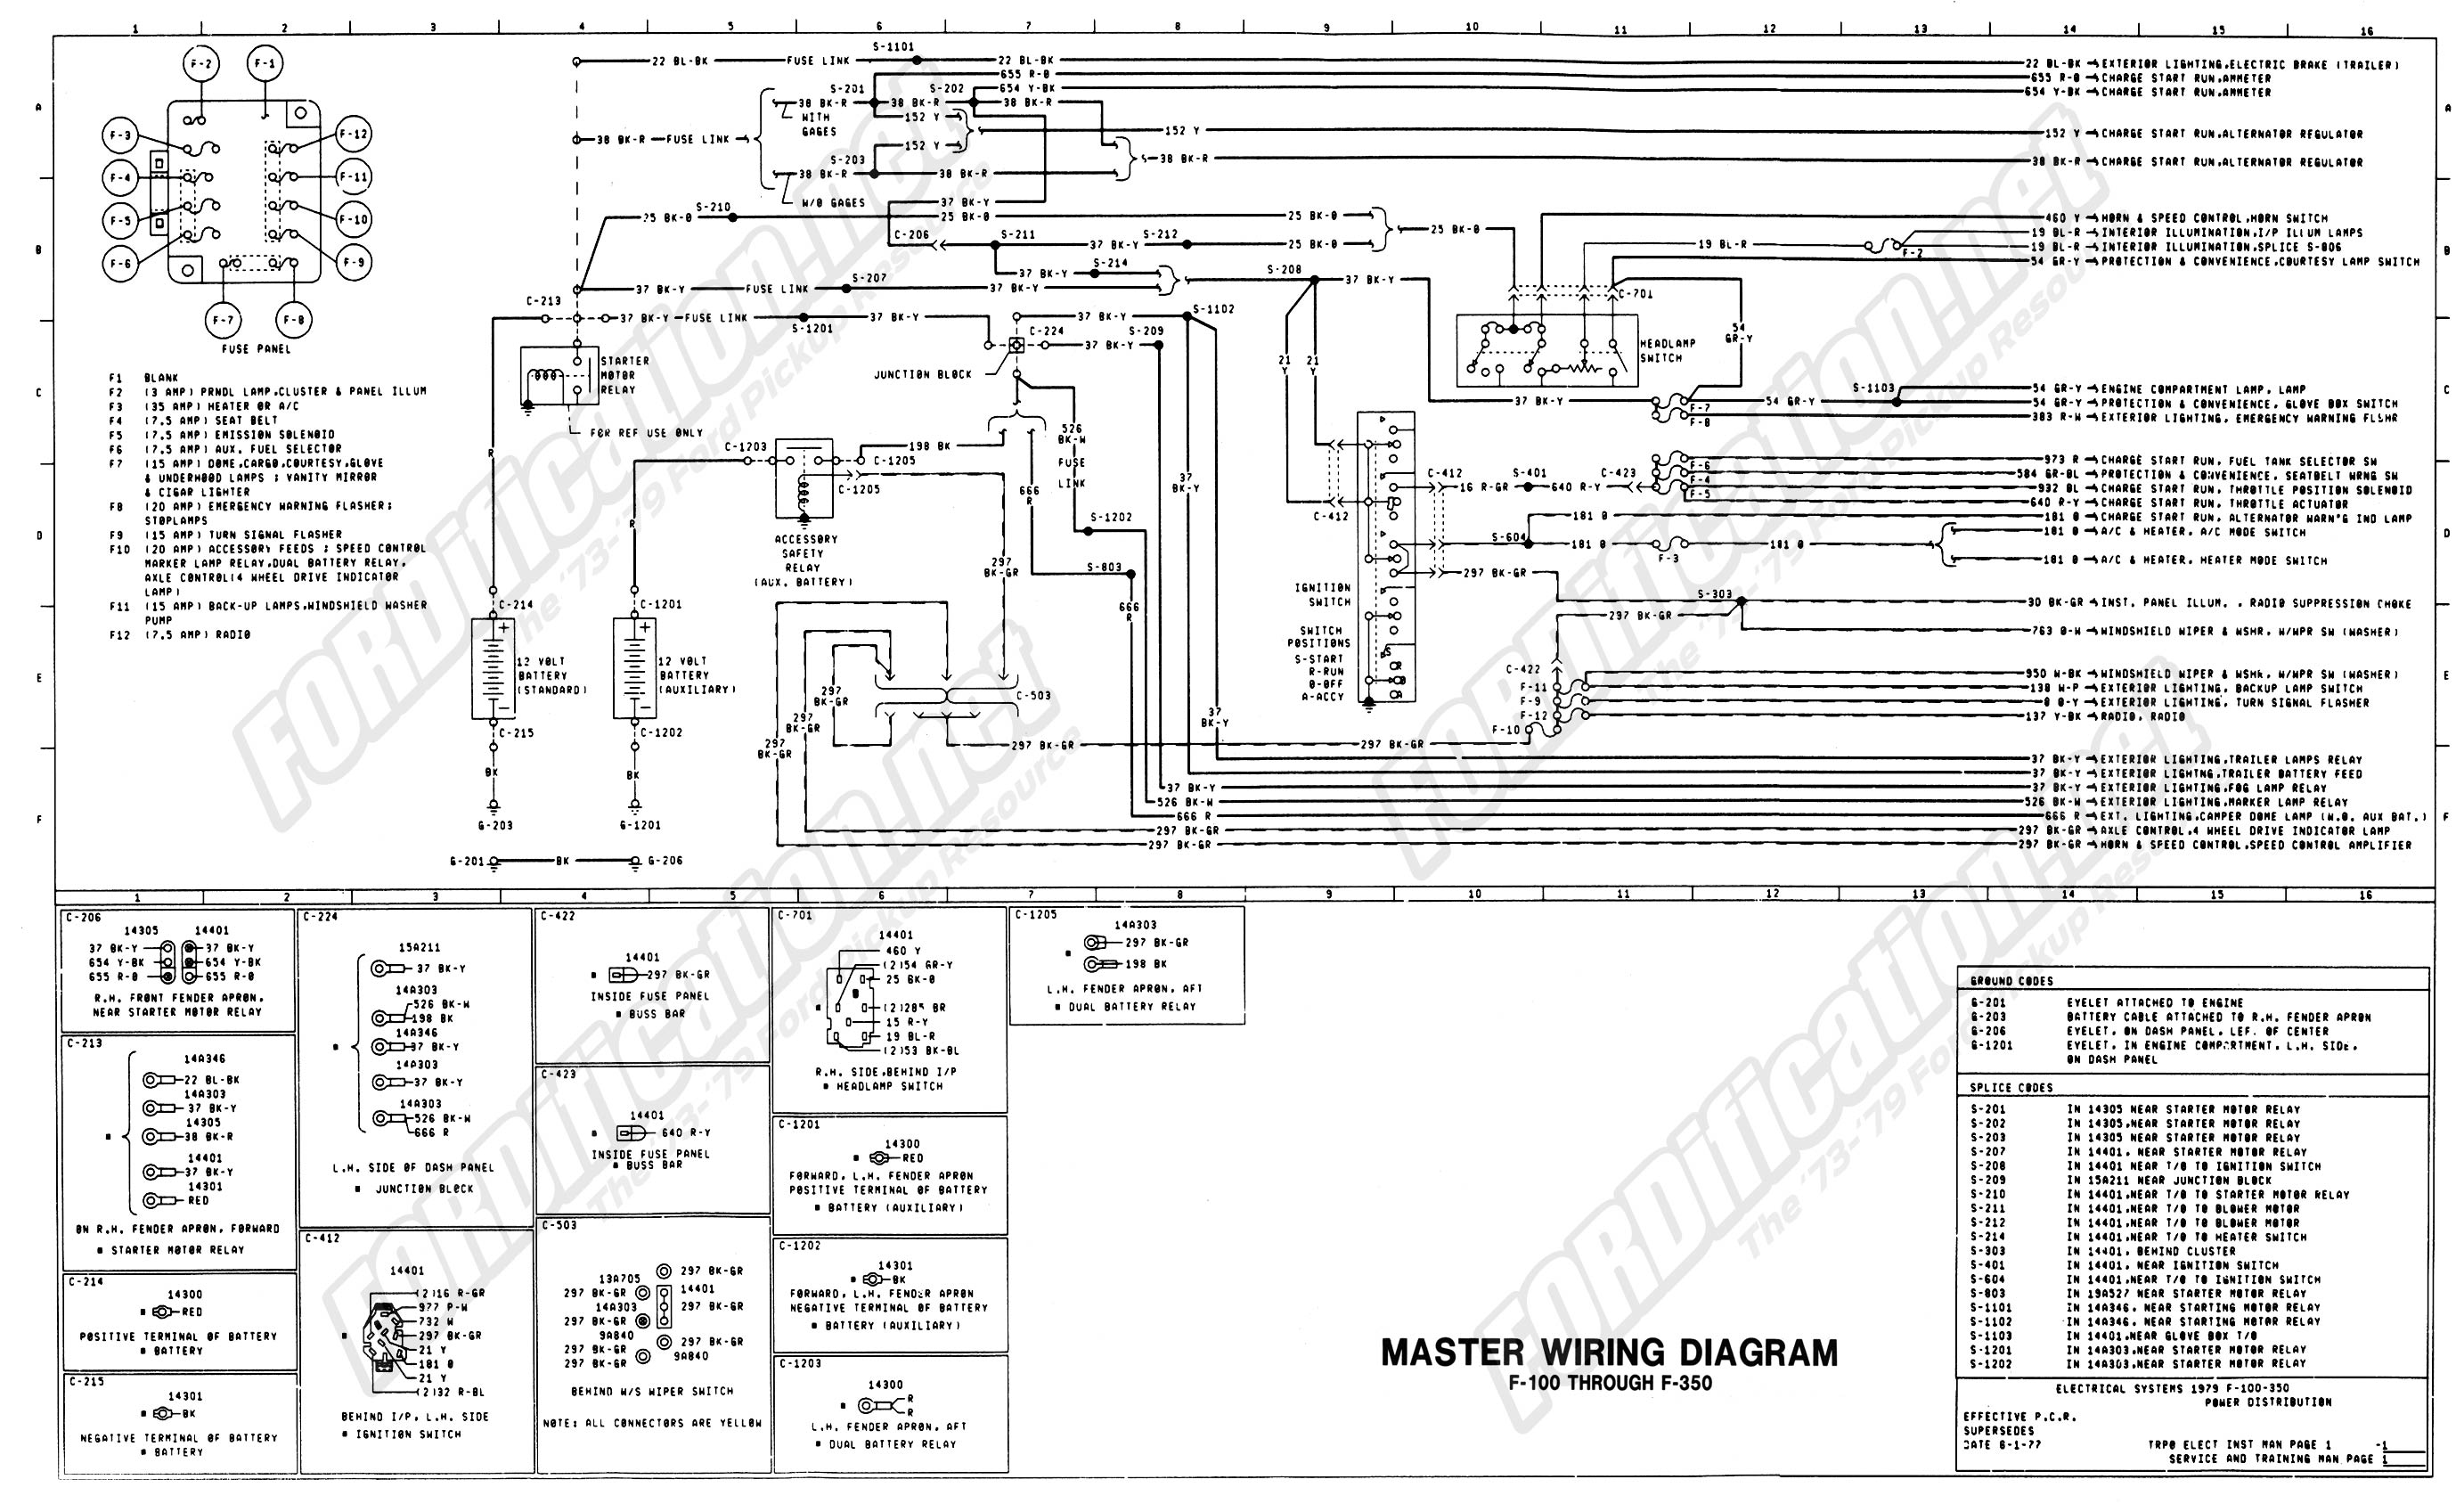 f350 wiring diagrams